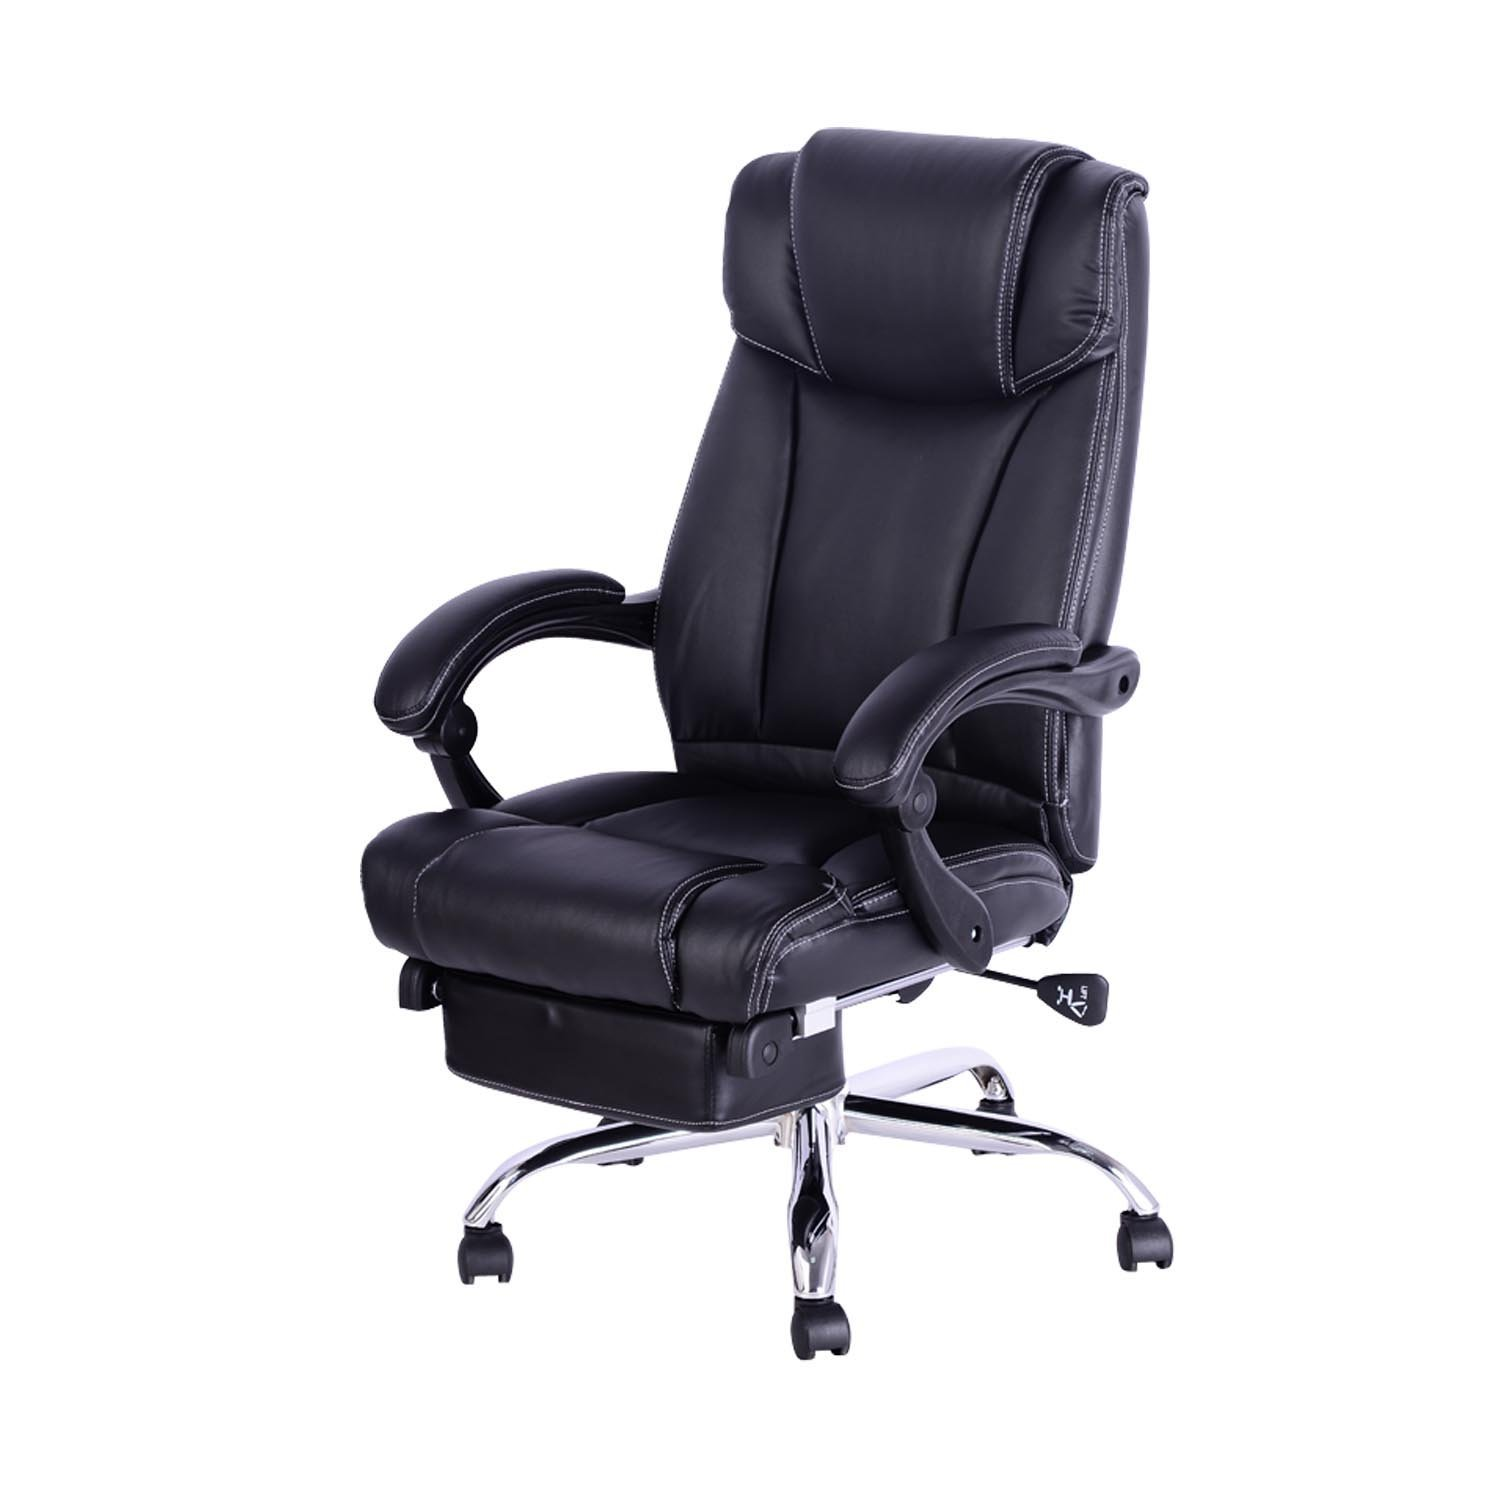 Image of: Top Reclining Office Chair With Footrest